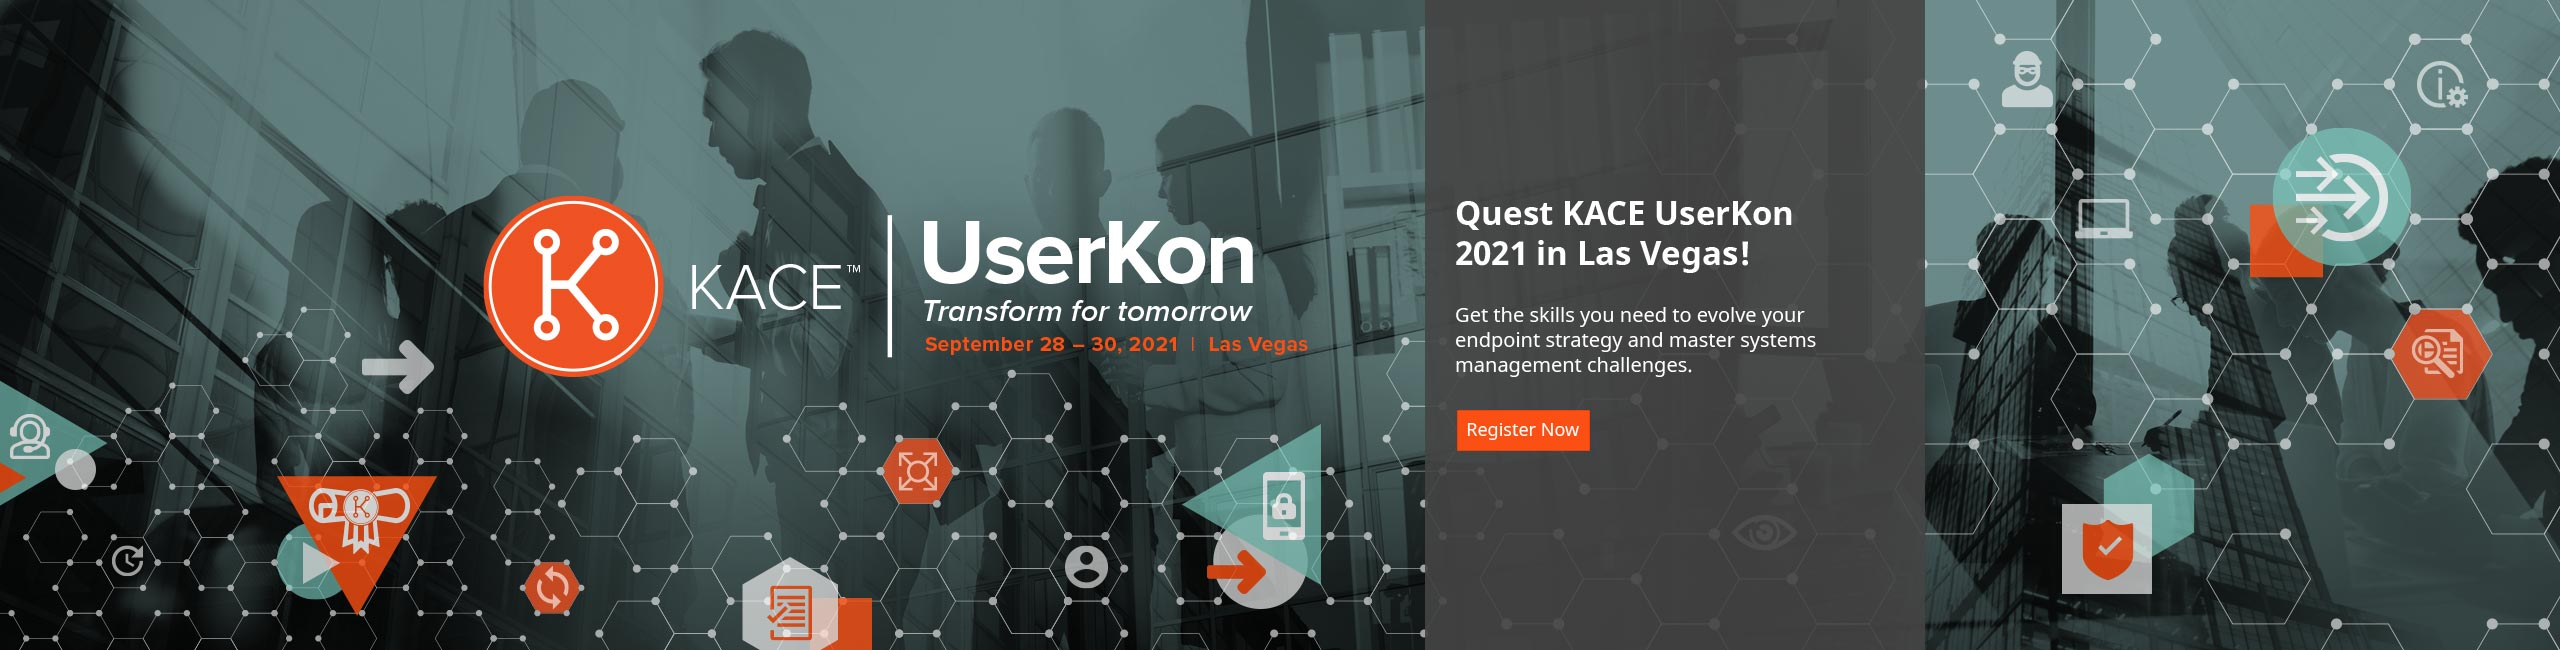 KACE UserKon 2021 Registration